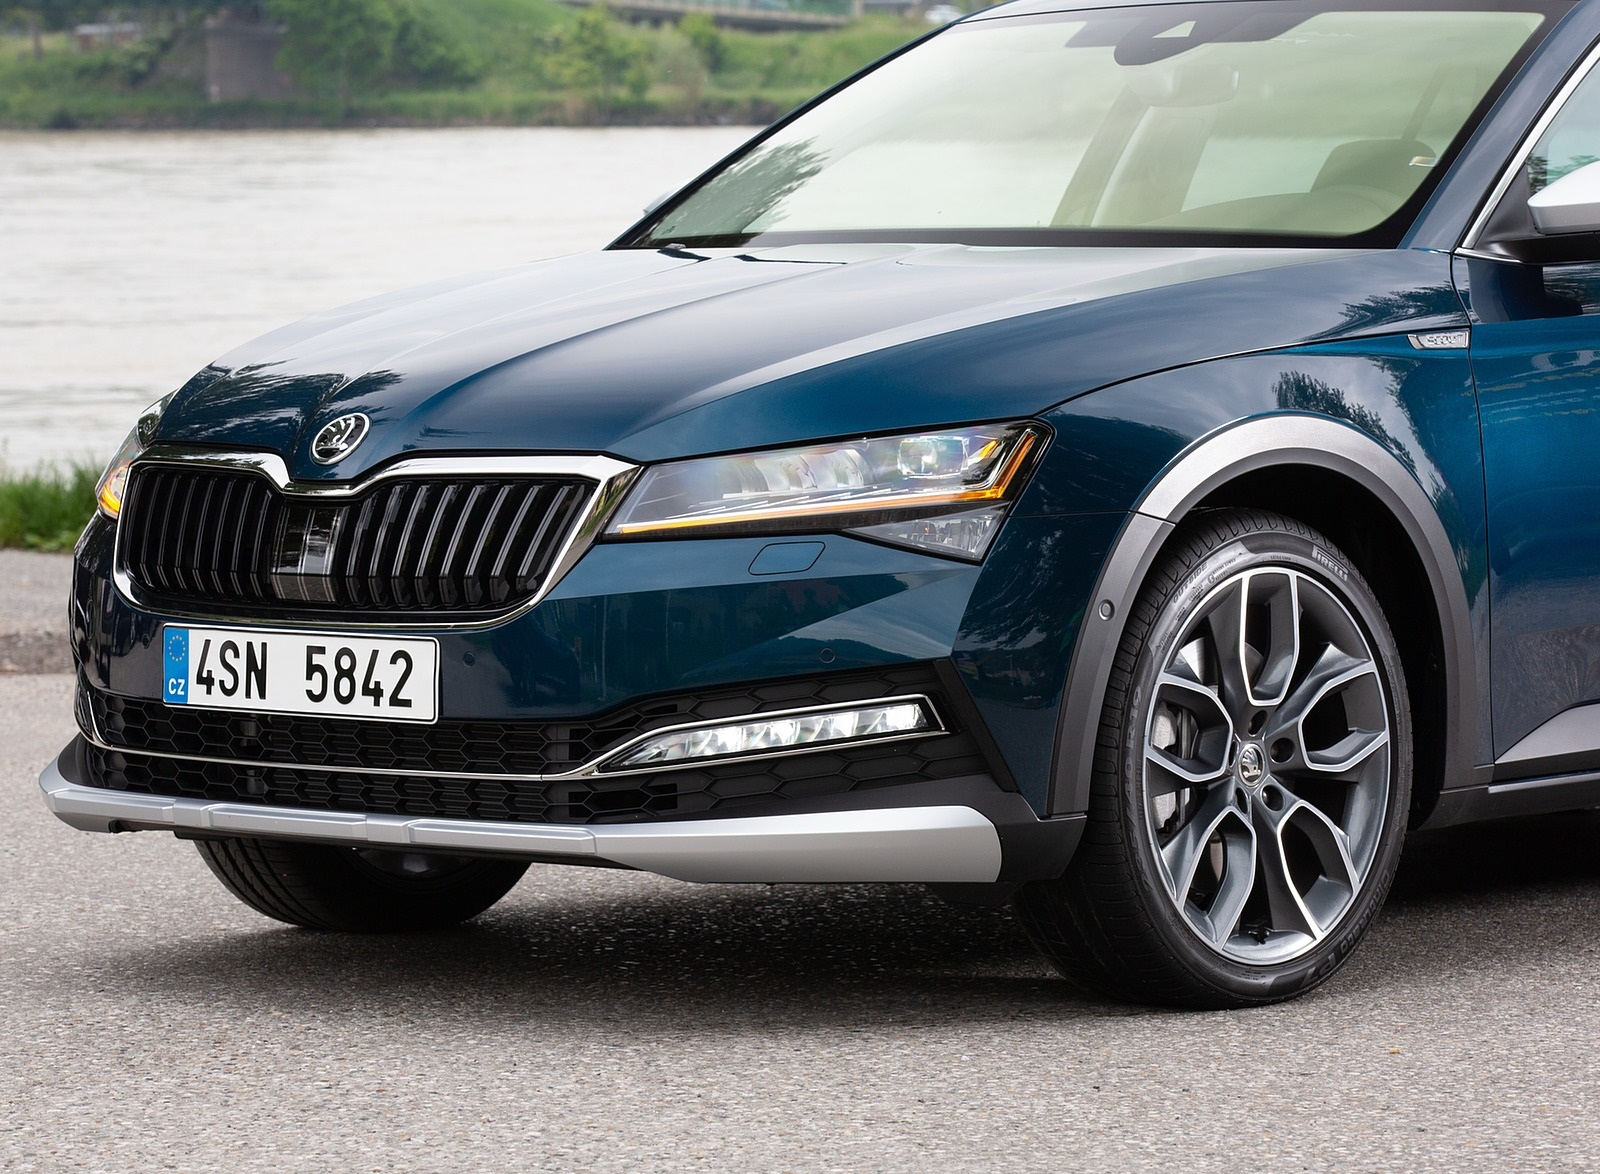 2020 Skoda Superb Scout Detail Wallpapers #29 of 51